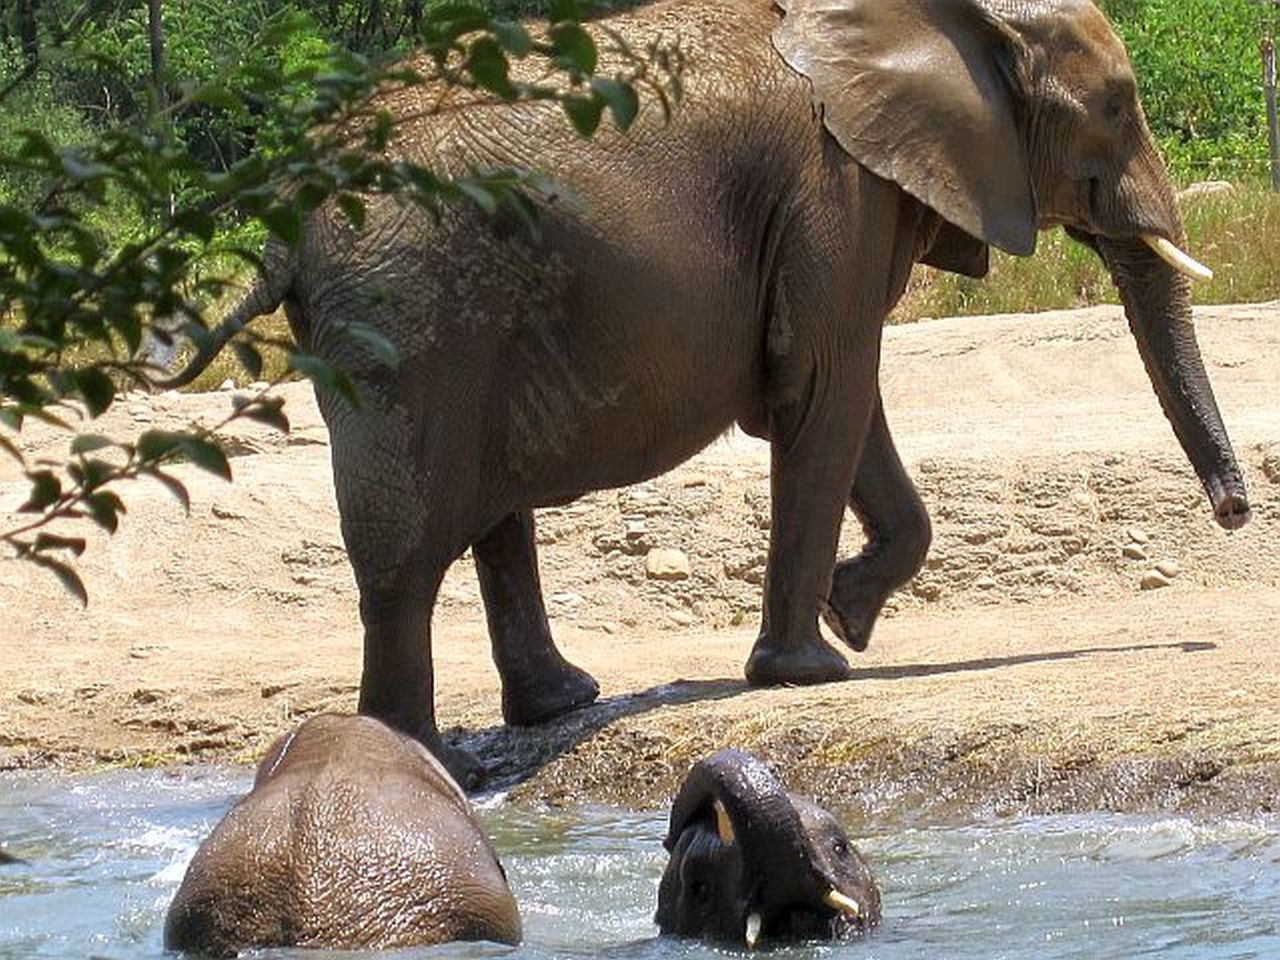 Elephants playing in water Animals In The Wild Animal Wildlife Elephant Animal Themes Mammal Nature One Animal Outdoors Safari Animals No People Water Sand Day Animal Trunk African Elephant Tusk Close-up